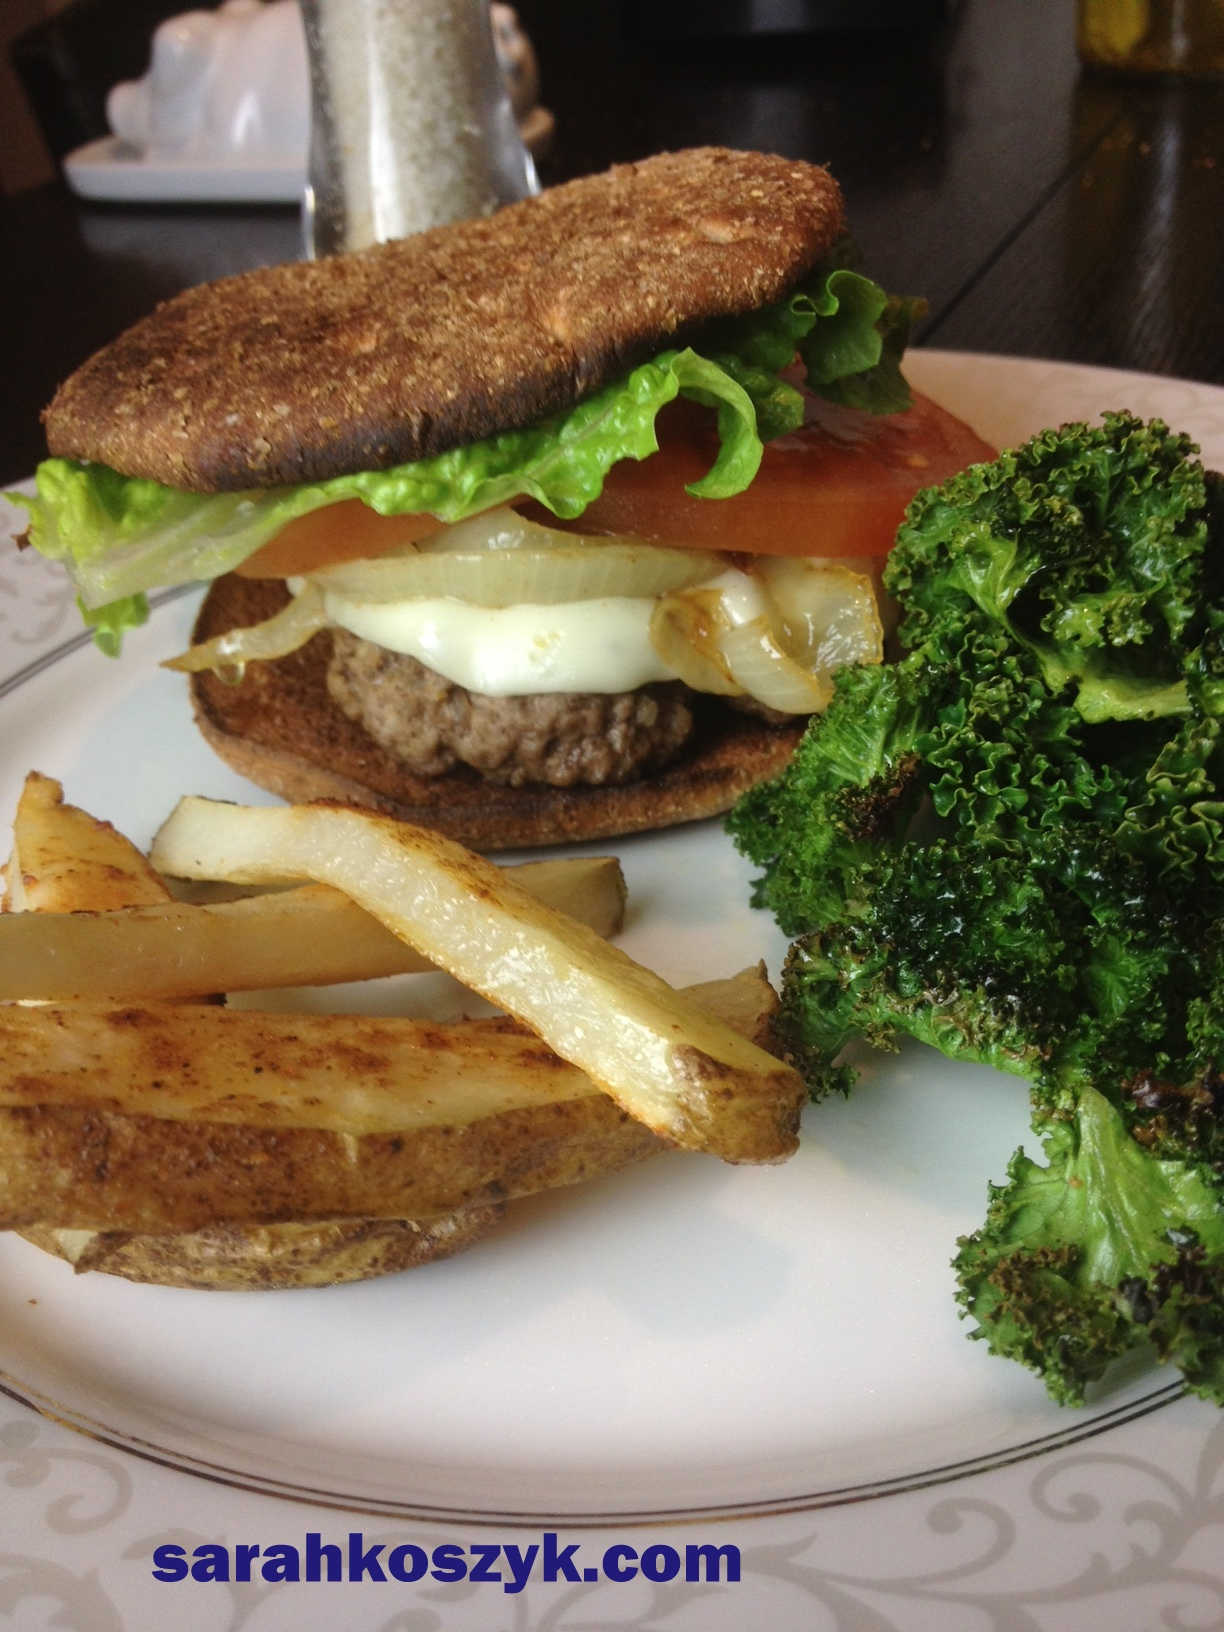 Bistro Burger with Kale Chips & Baked French Fries